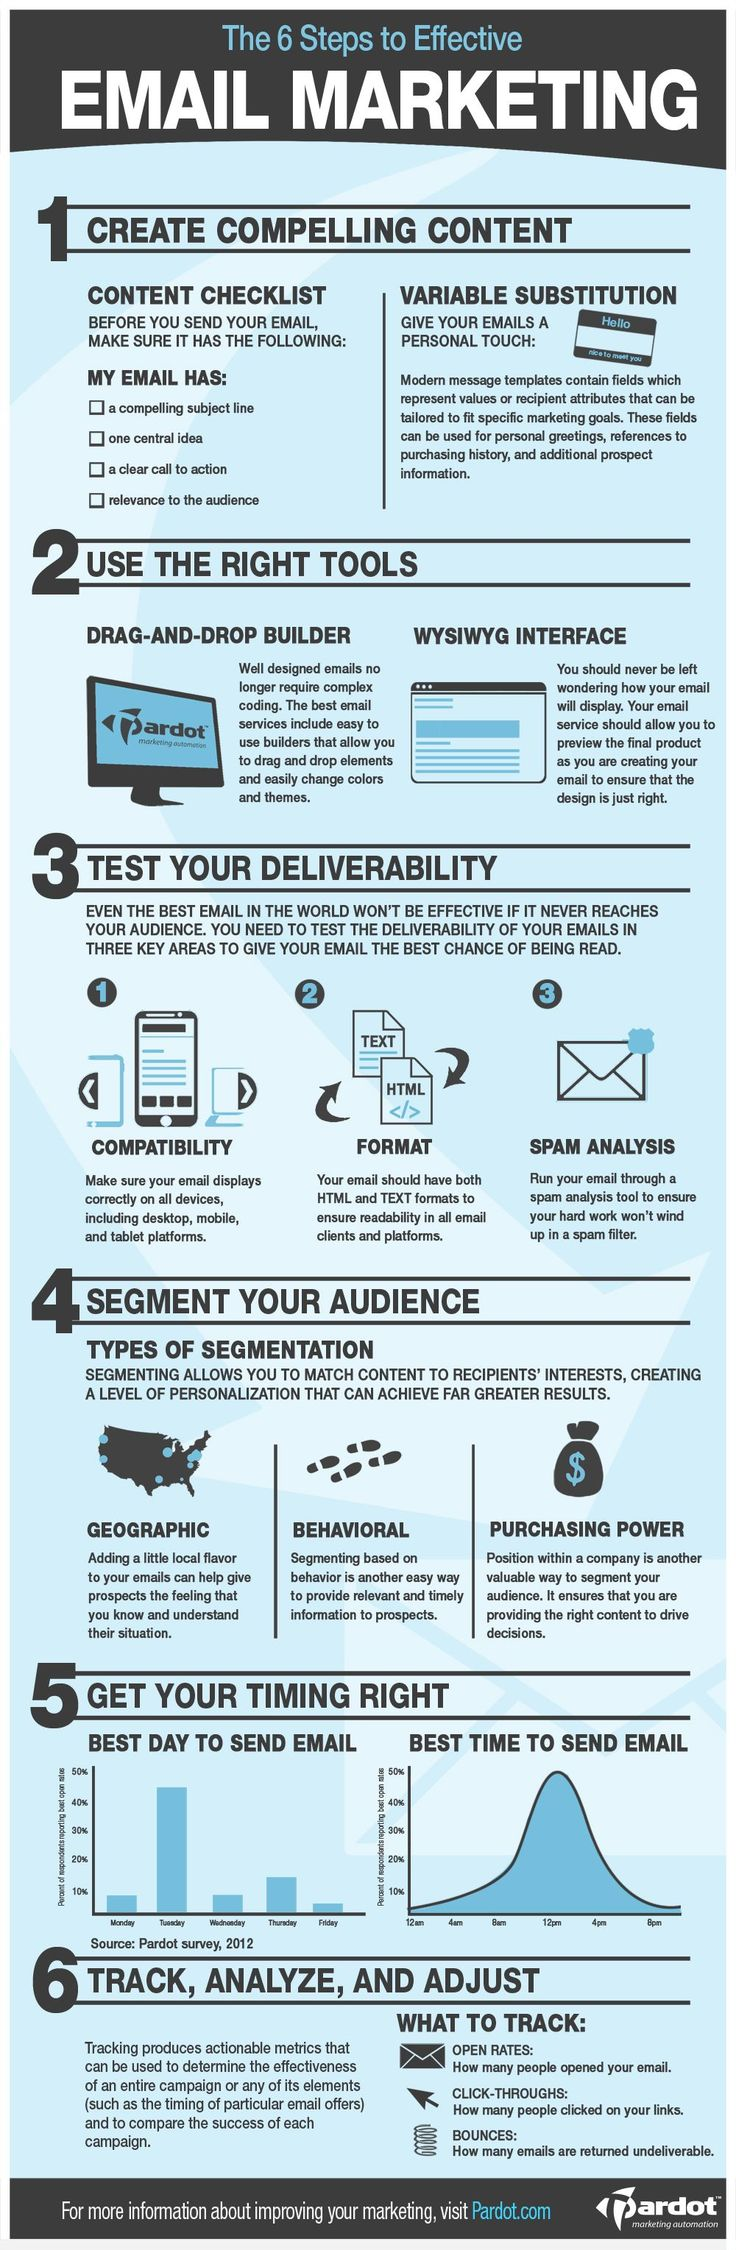 6 Steps to Effective #EmailMarketing